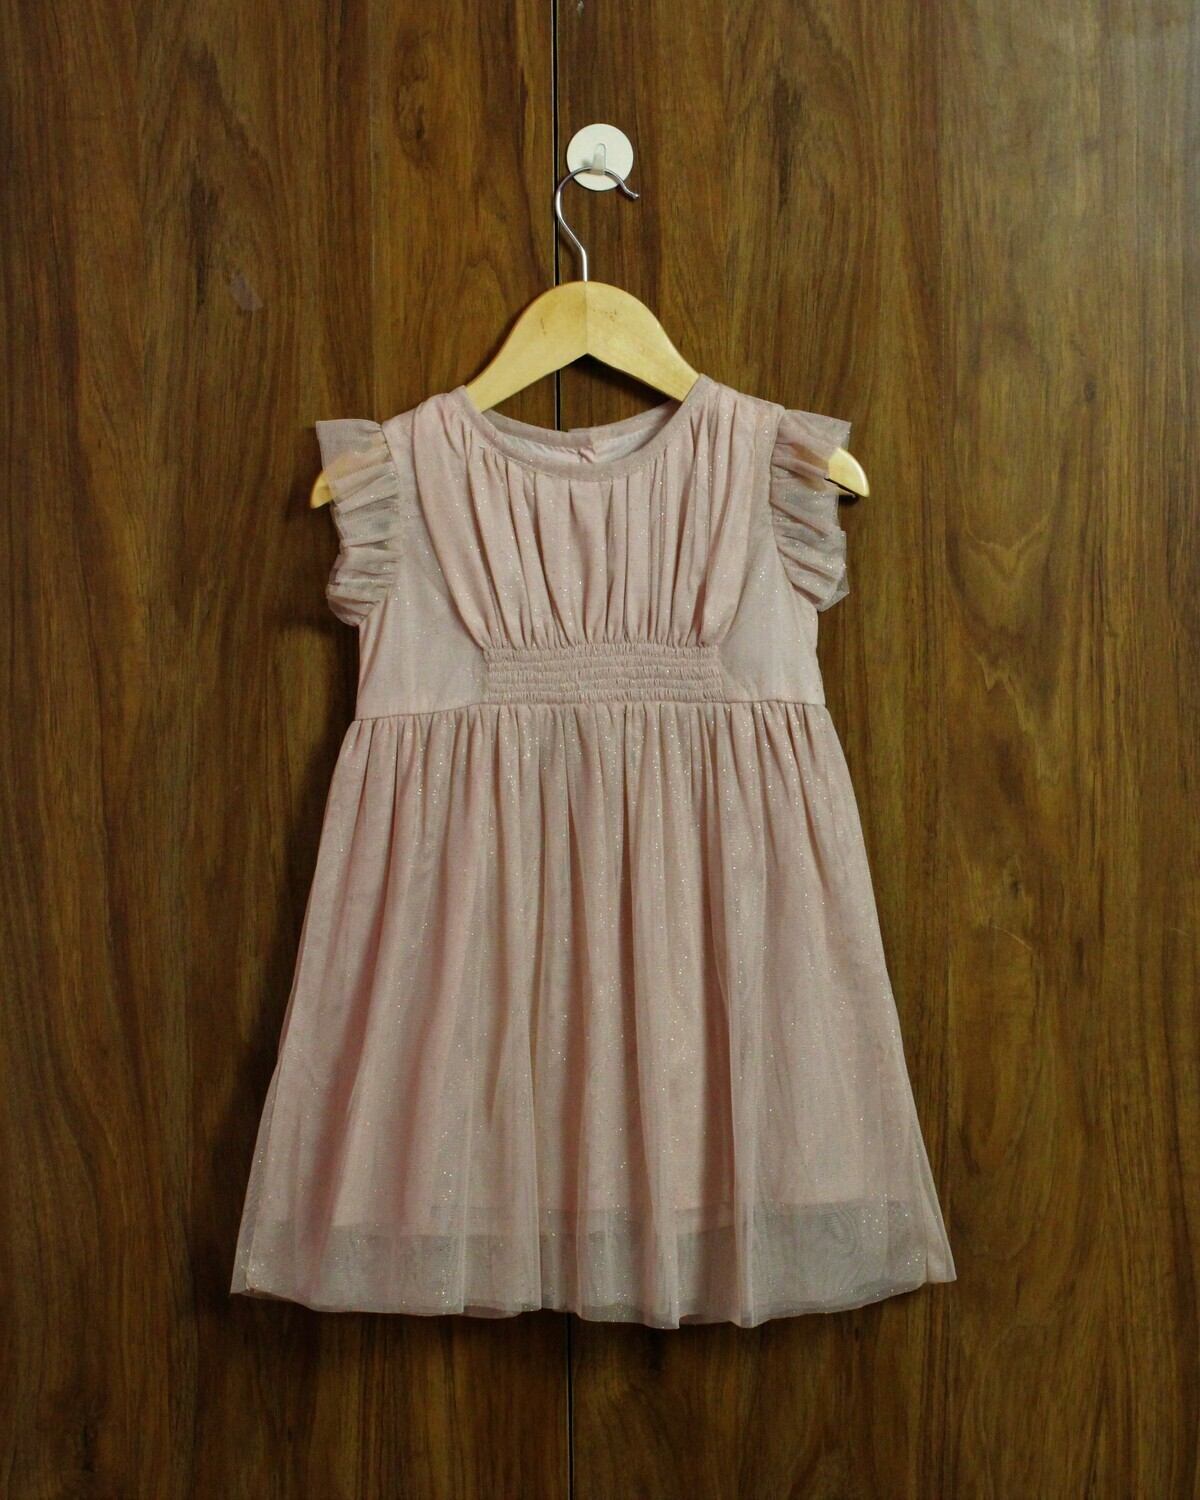 party dress(1 to 4 Yrs)